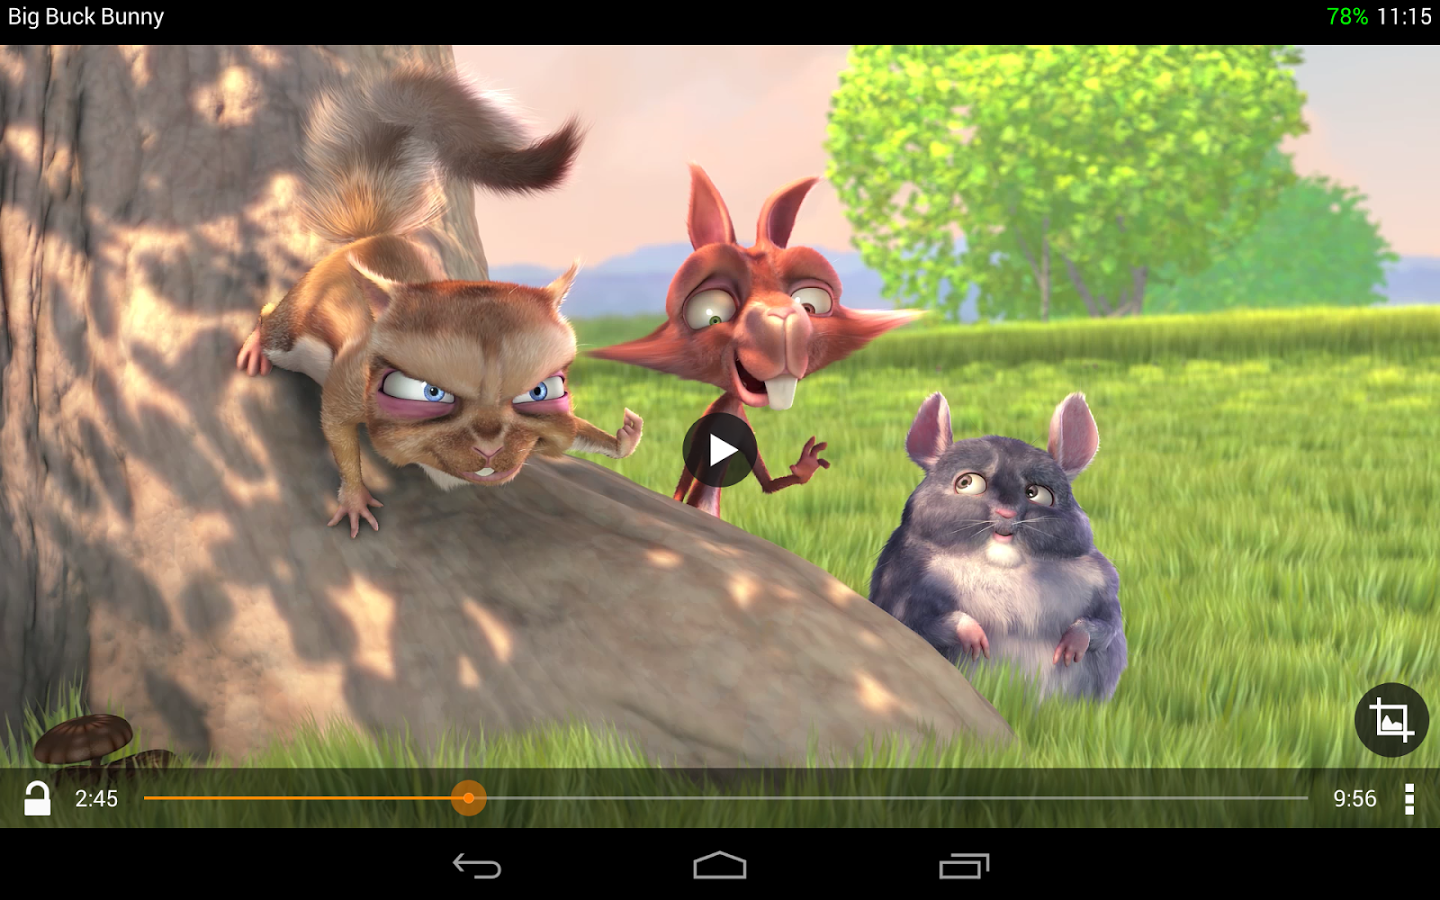 Tutorial VLC Media Player for iPhone, iPad, PC, Mac, Android